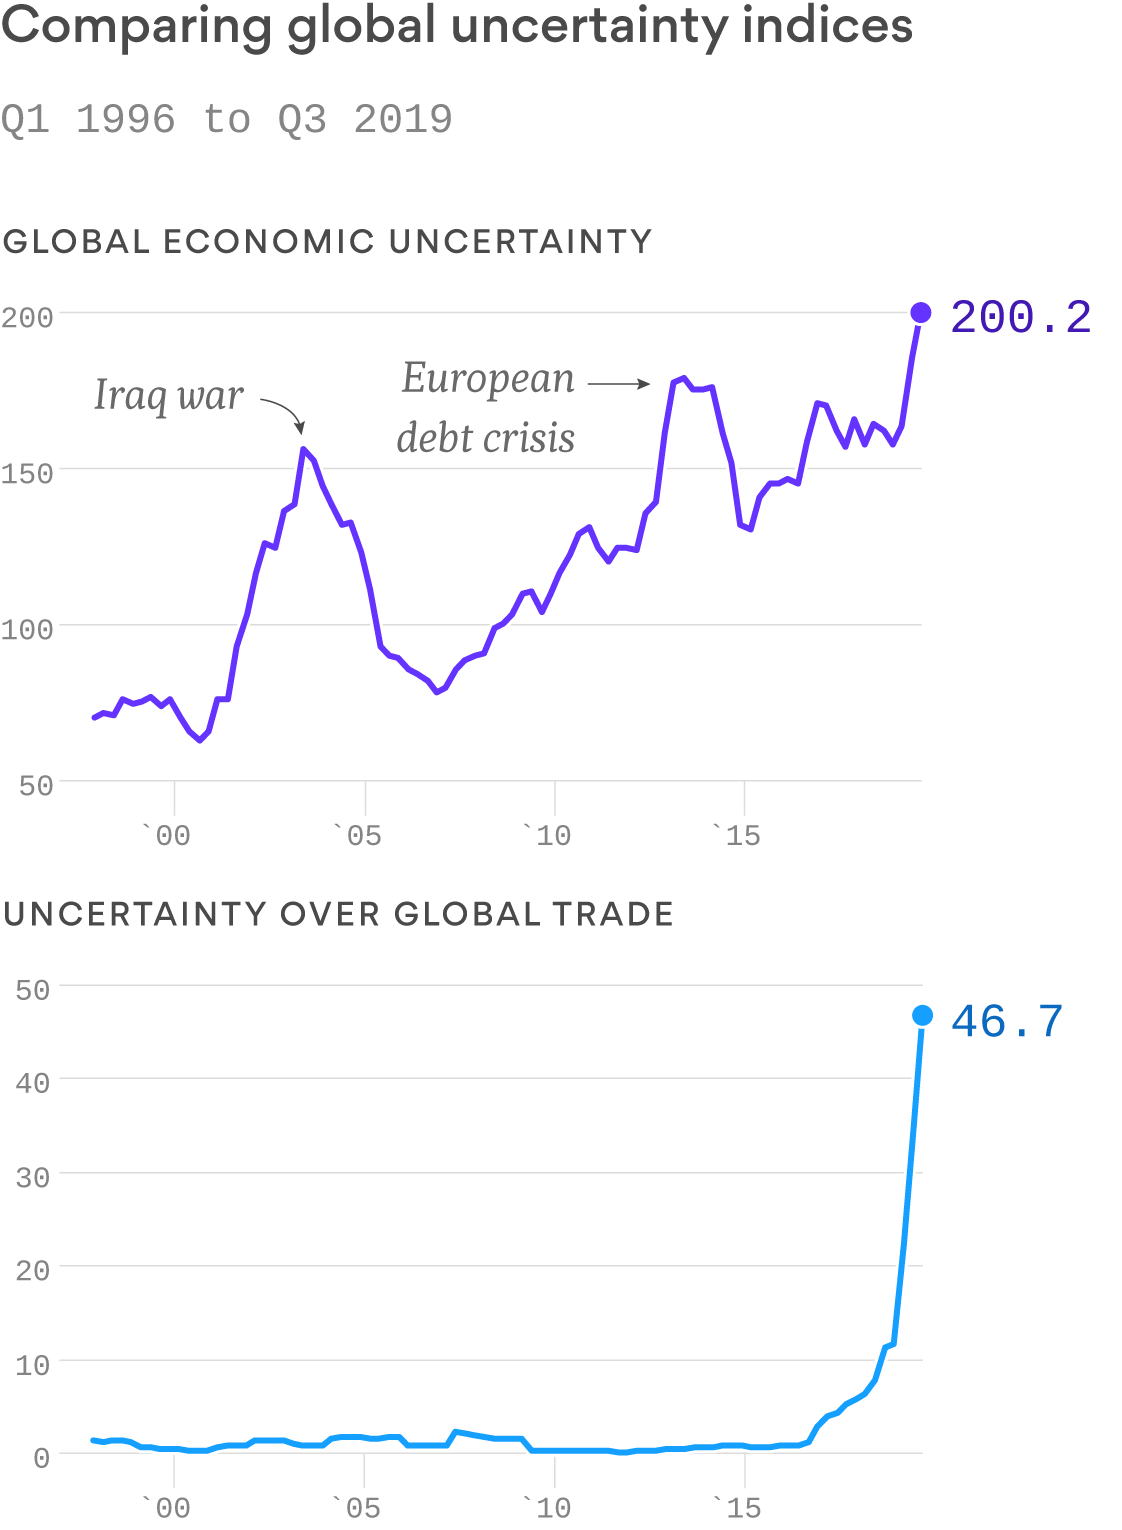 Global economic uncertainty hits a 20-year high